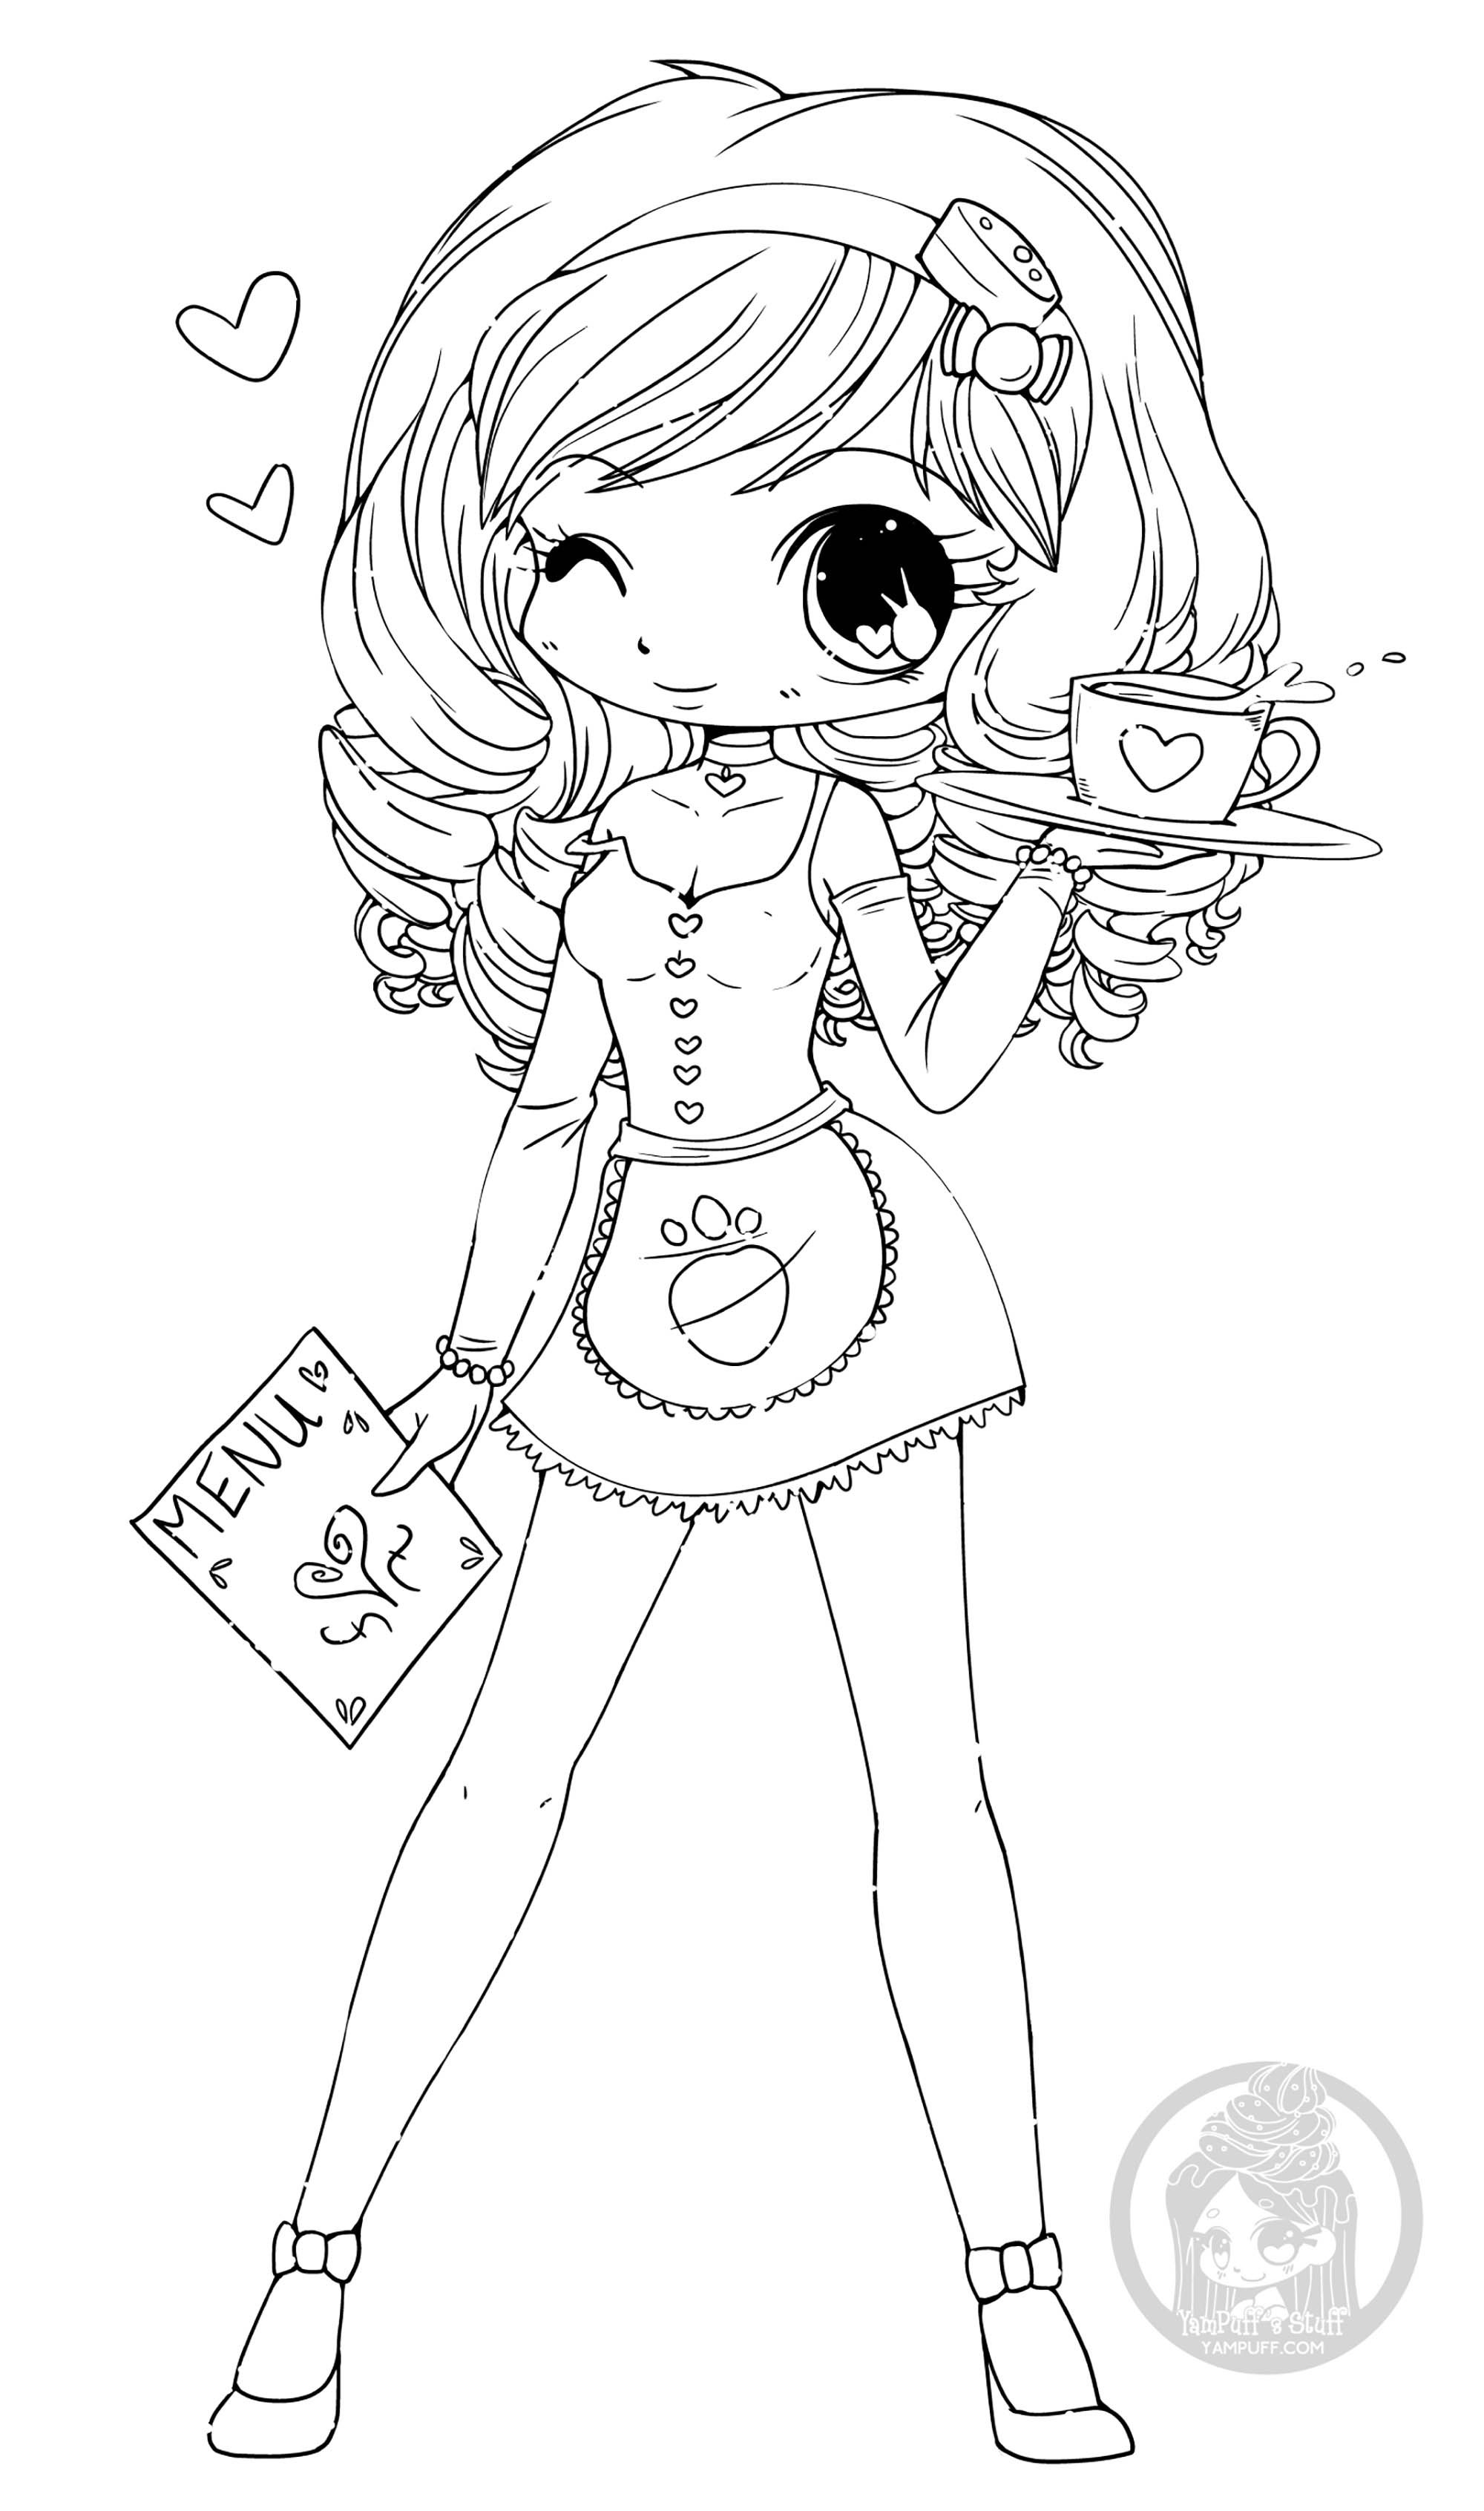 This Cute Girl Winks You To Make You Want To Color Her From The Gallery Back To Childhood Chibi Coloring Pages Cute Coloring Pages Coloring Pages